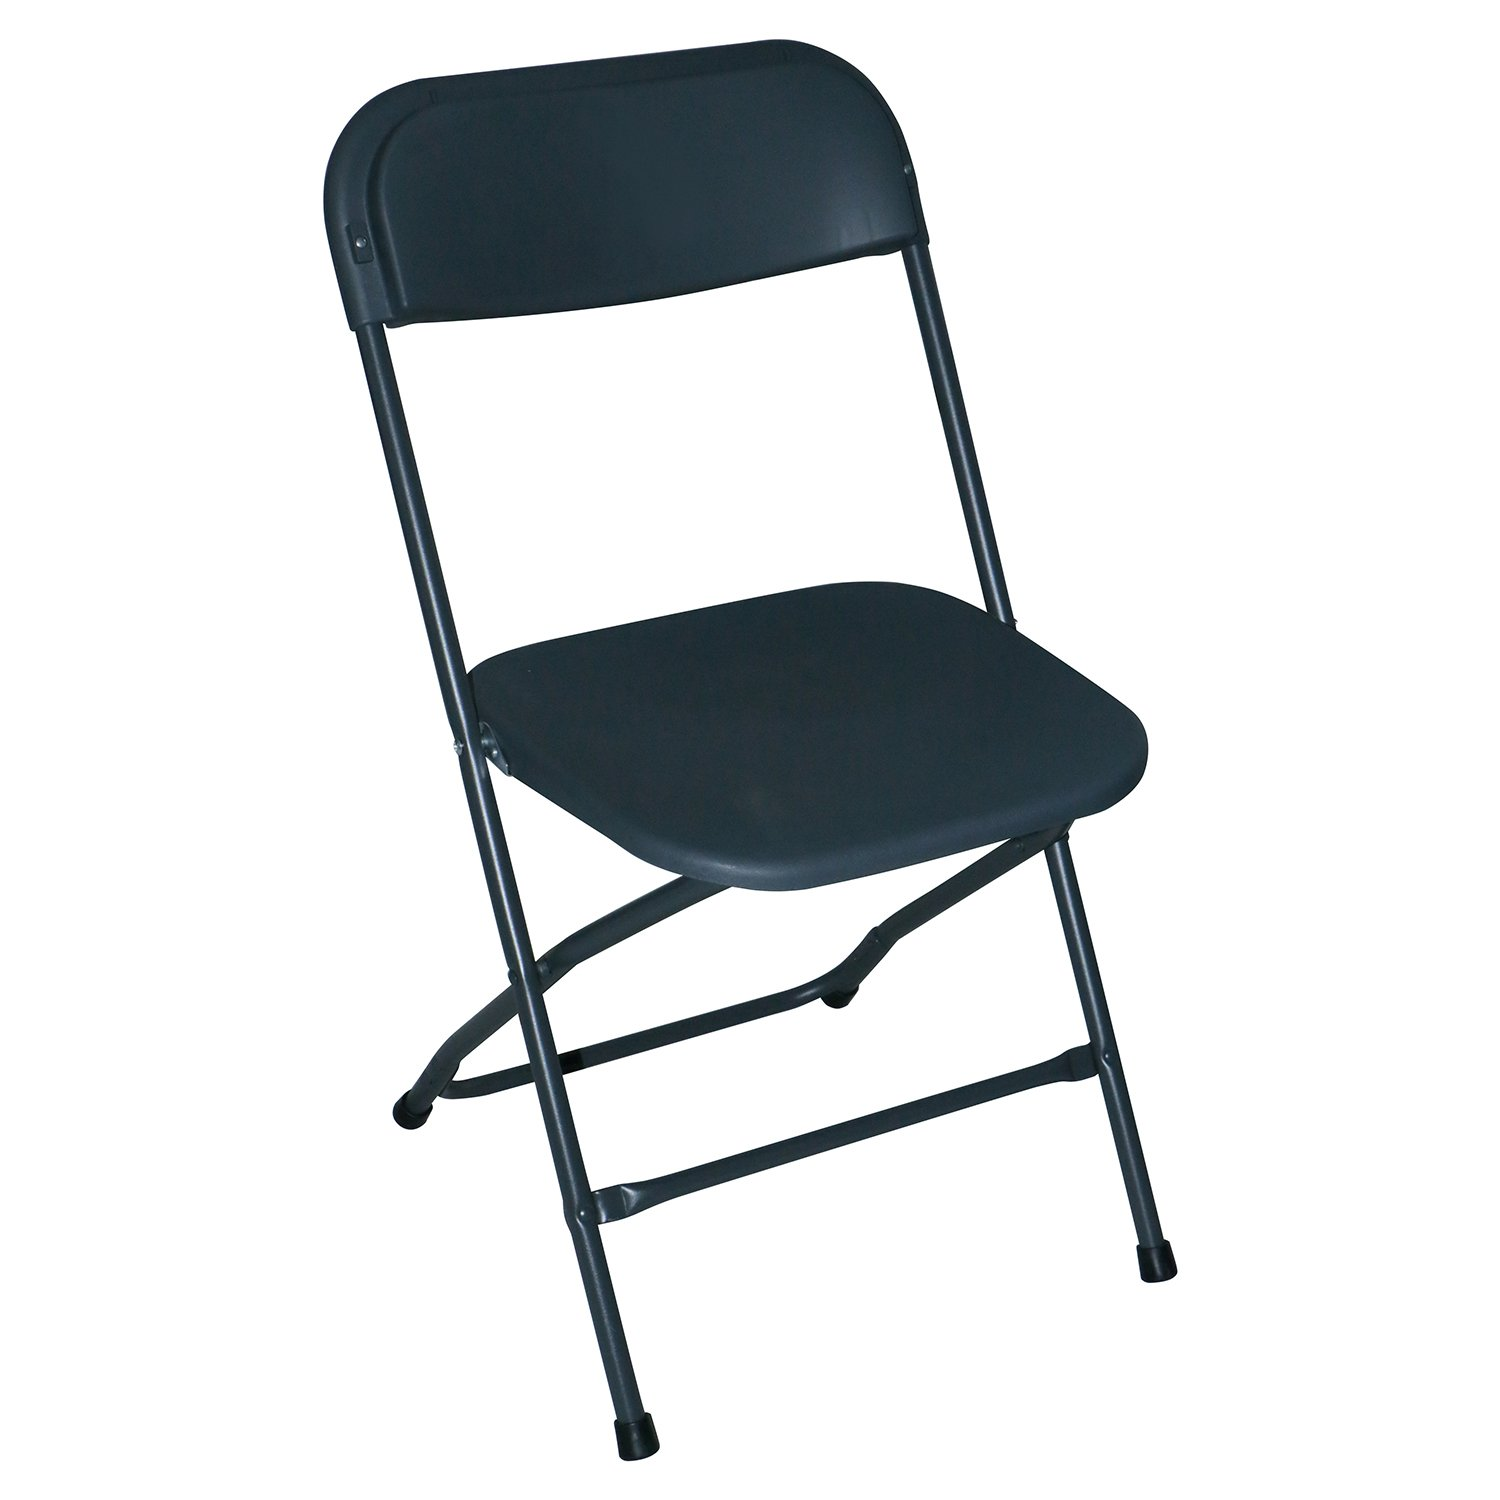 BORELAX 8 Pack Commercial Plastic Folding Chairs for Wedding Banquets, Parties, Graduations, Sporting Event Dark Gray